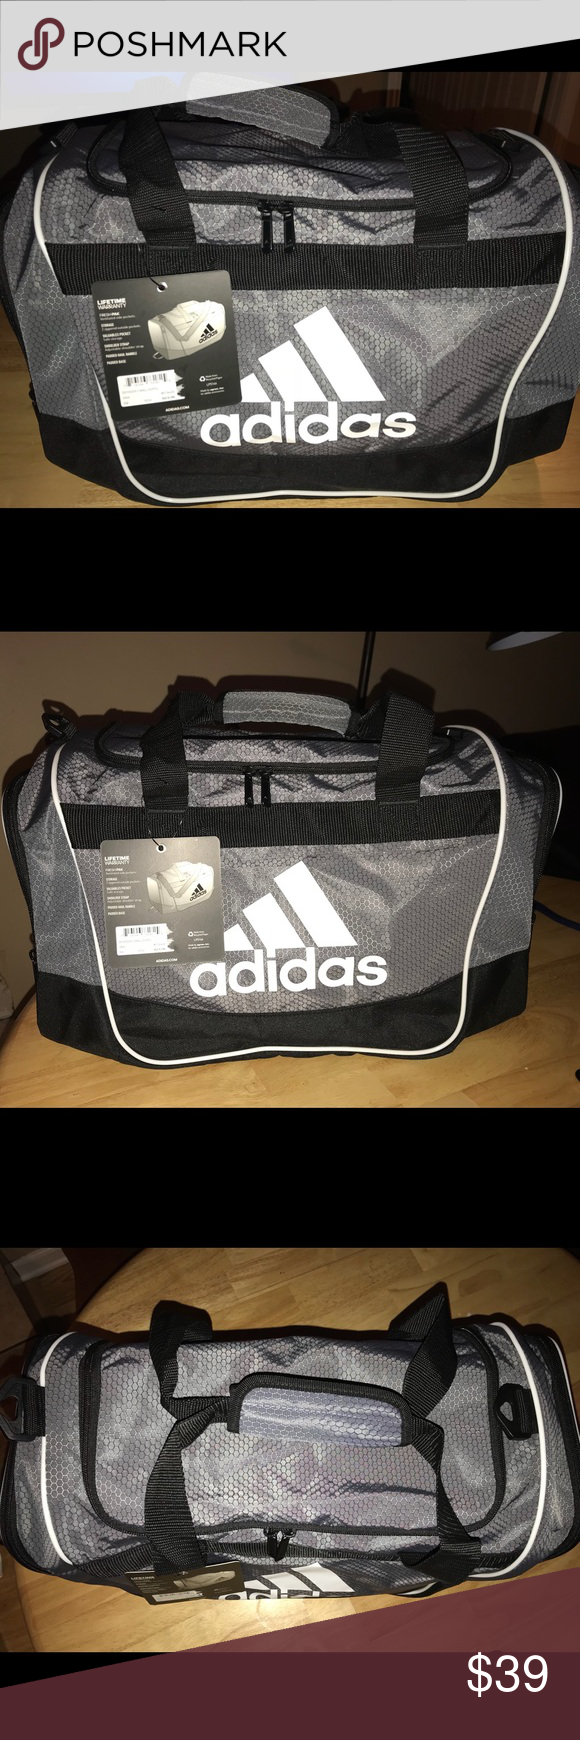 Adidas Defender II small duffle bag. PRICE DROP Brand new with tags PRICE  FIRM adidas 5249fbb080918